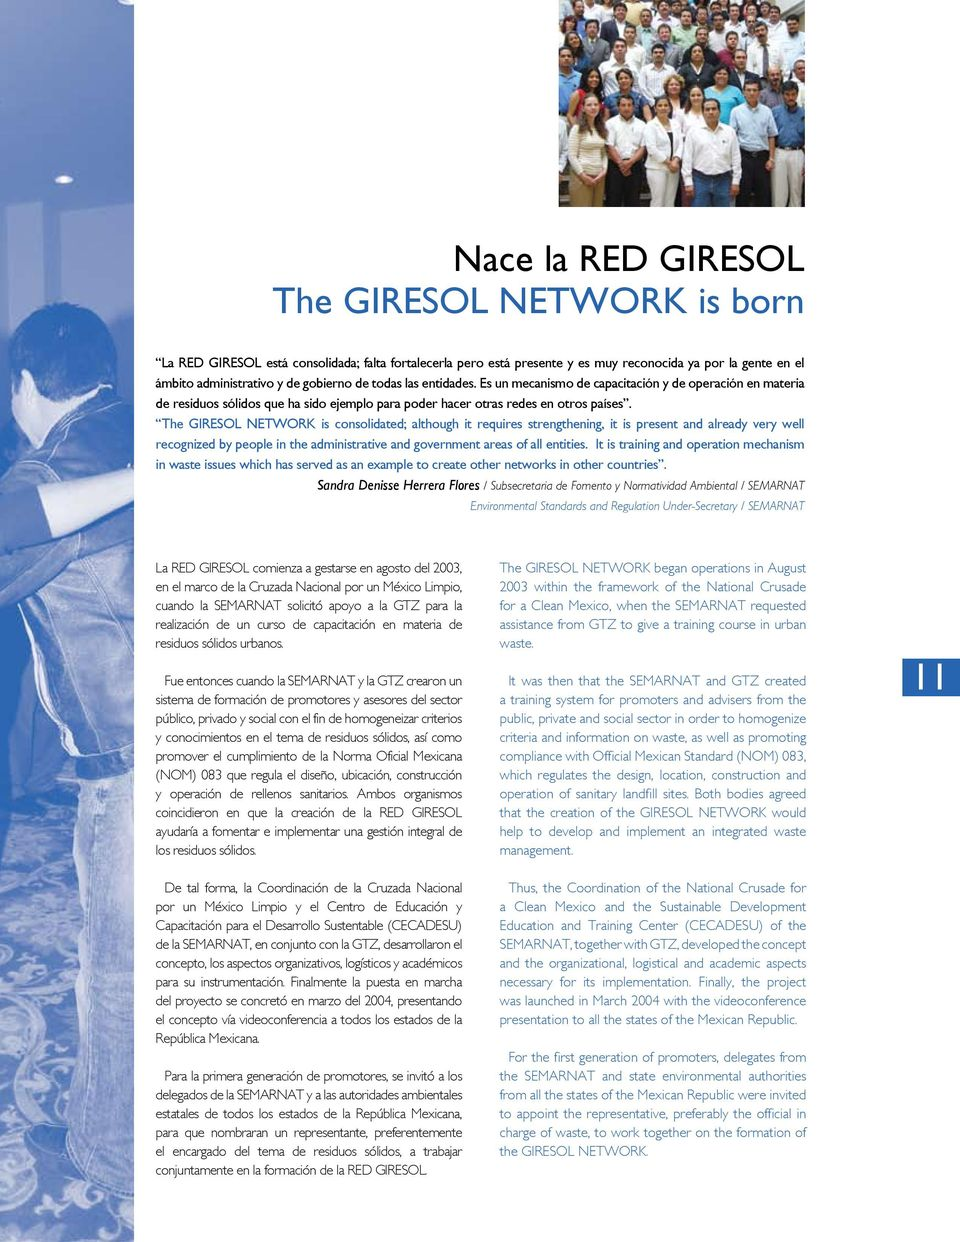 The GIRESOL NETWORK is consolidated; although it requires strengthening, it is present and already very well recognized by people in the administrative and government areas of all entities.